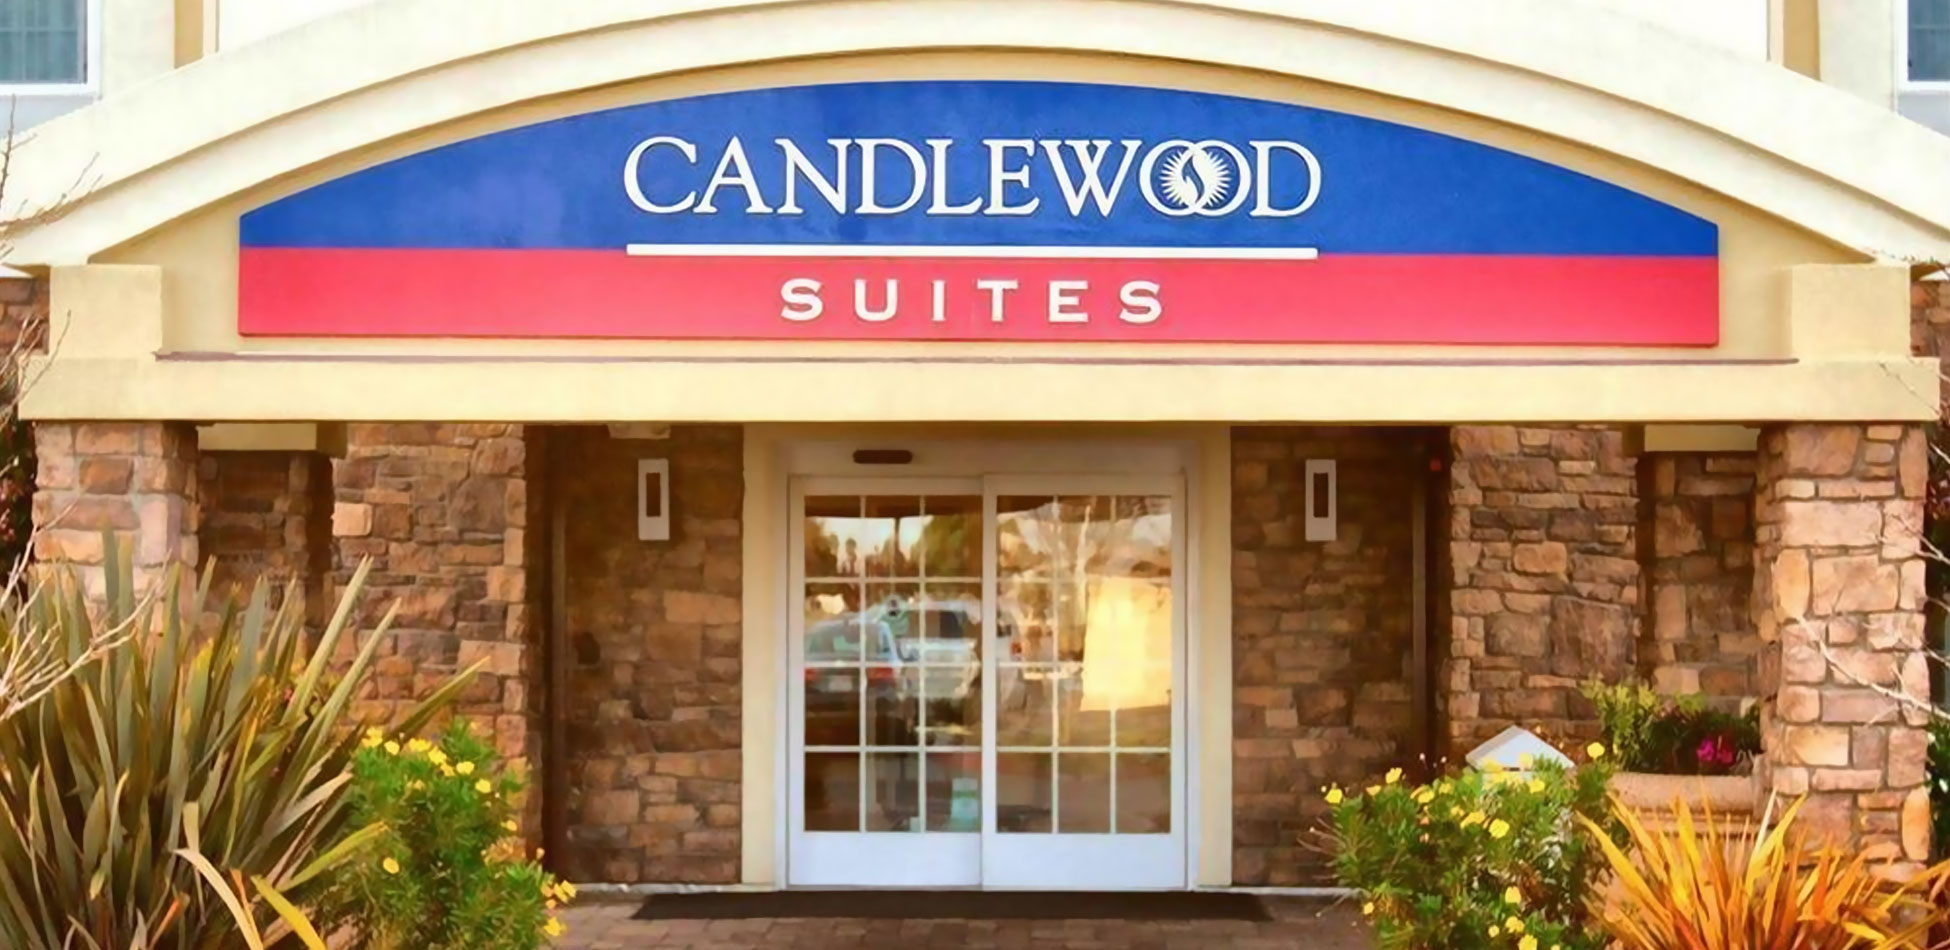 Candlewood and Suites